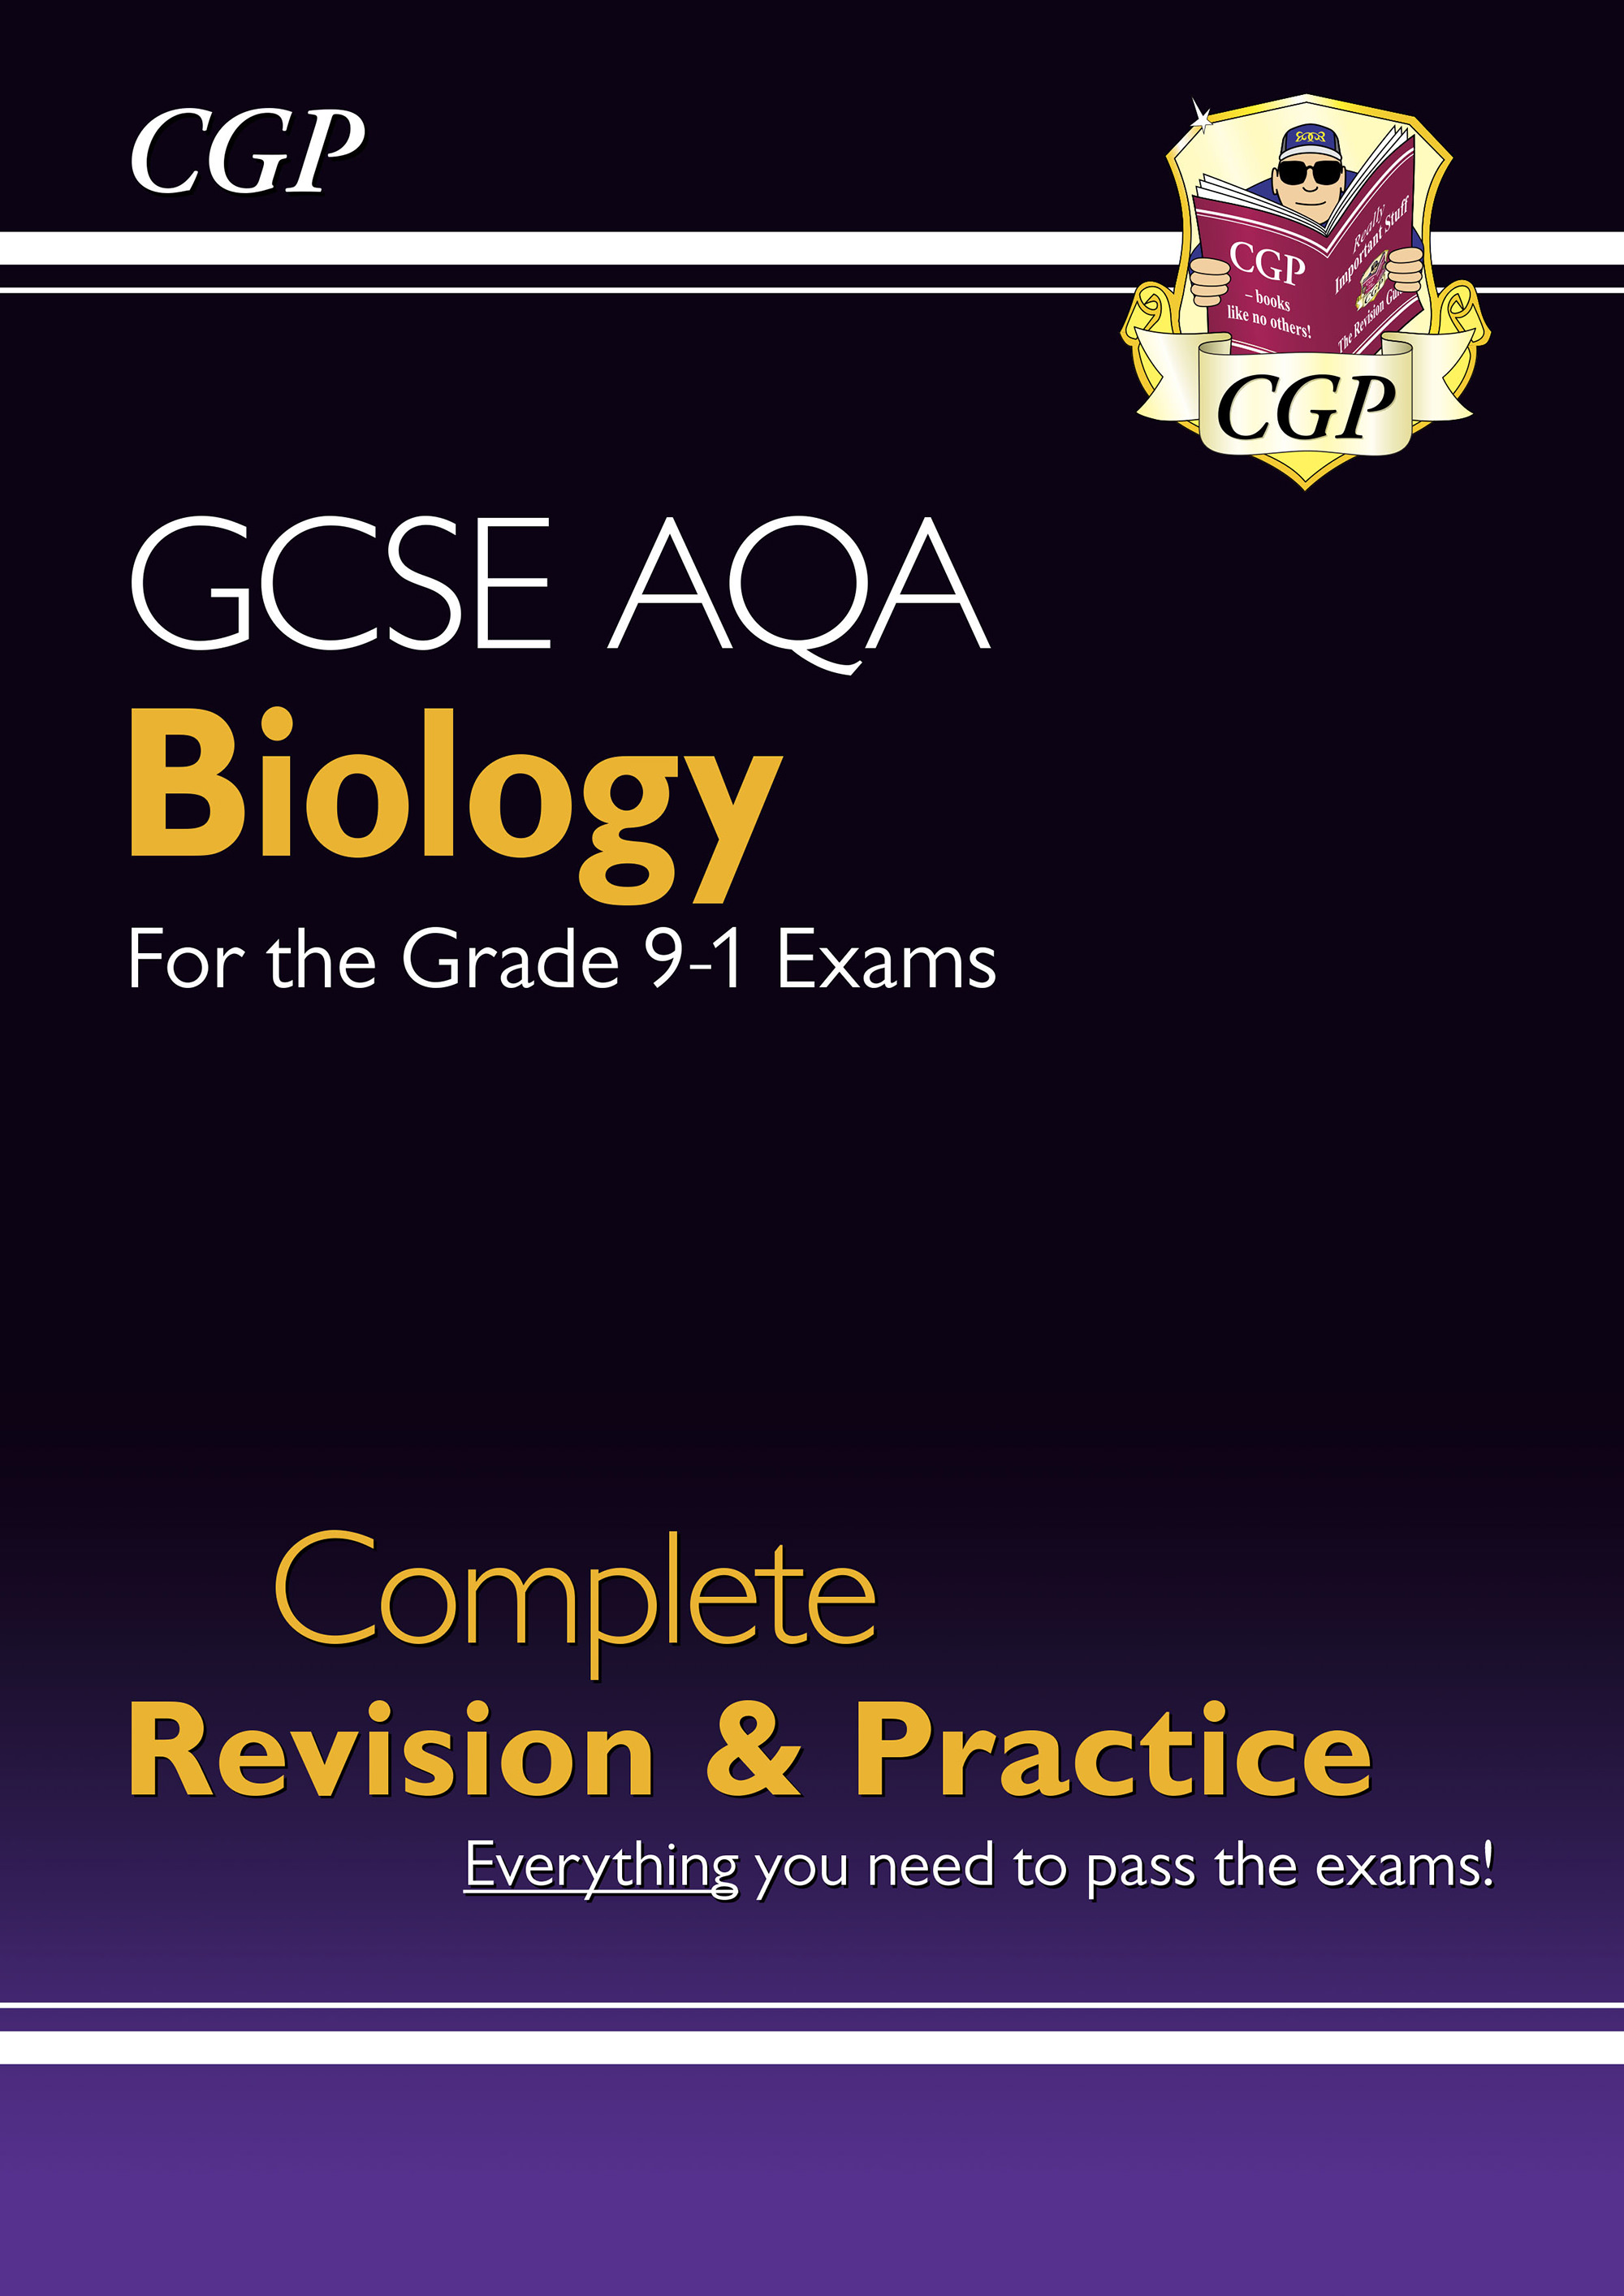 BAS45DK - New Grade 9-1 GCSE Biology AQA Complete Revision & Practice